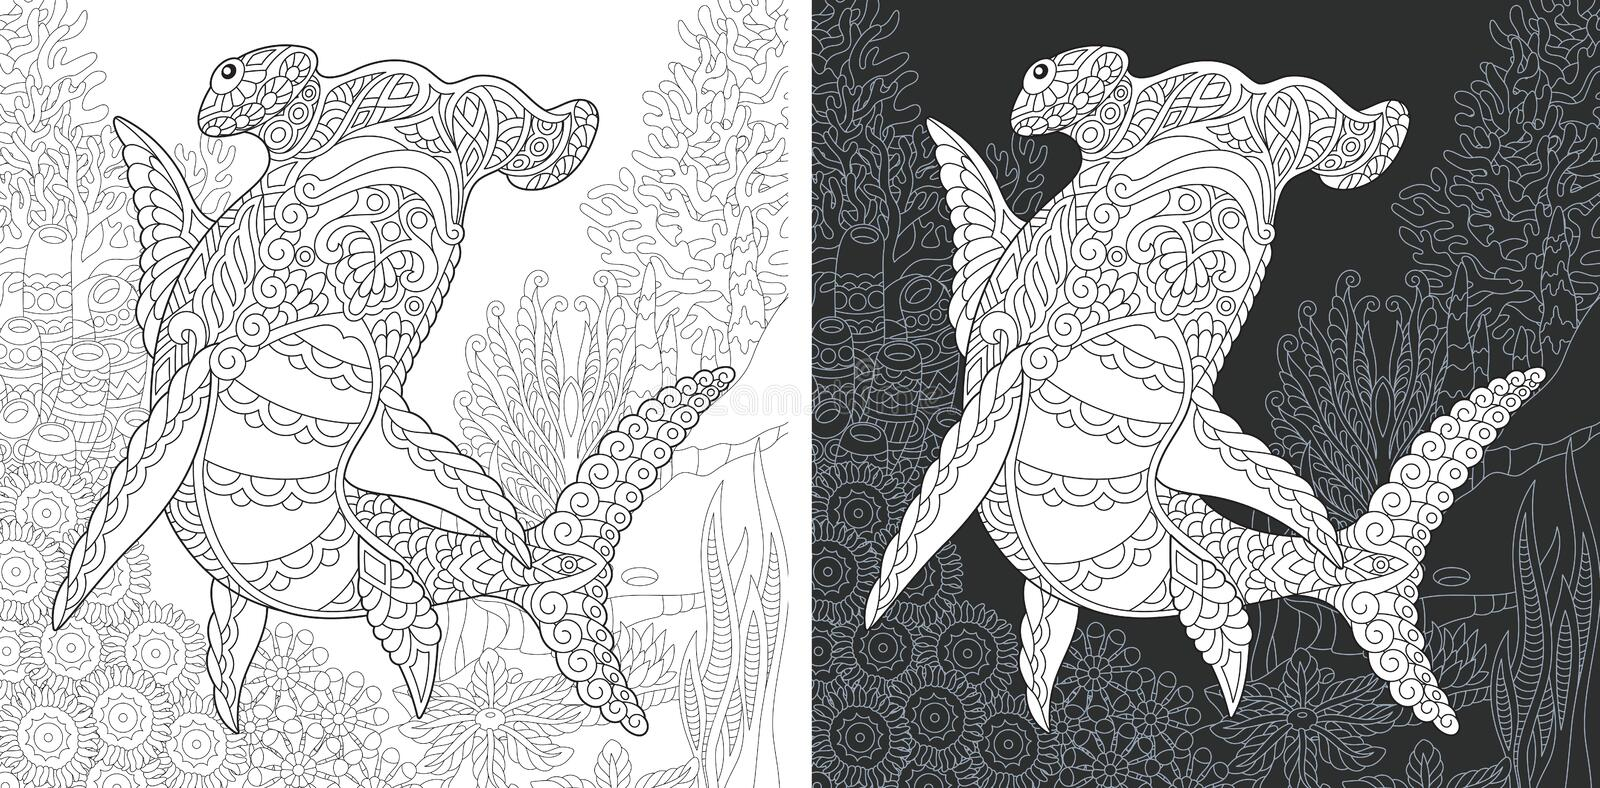 Coloring page with hammer head shark royalty free stock image